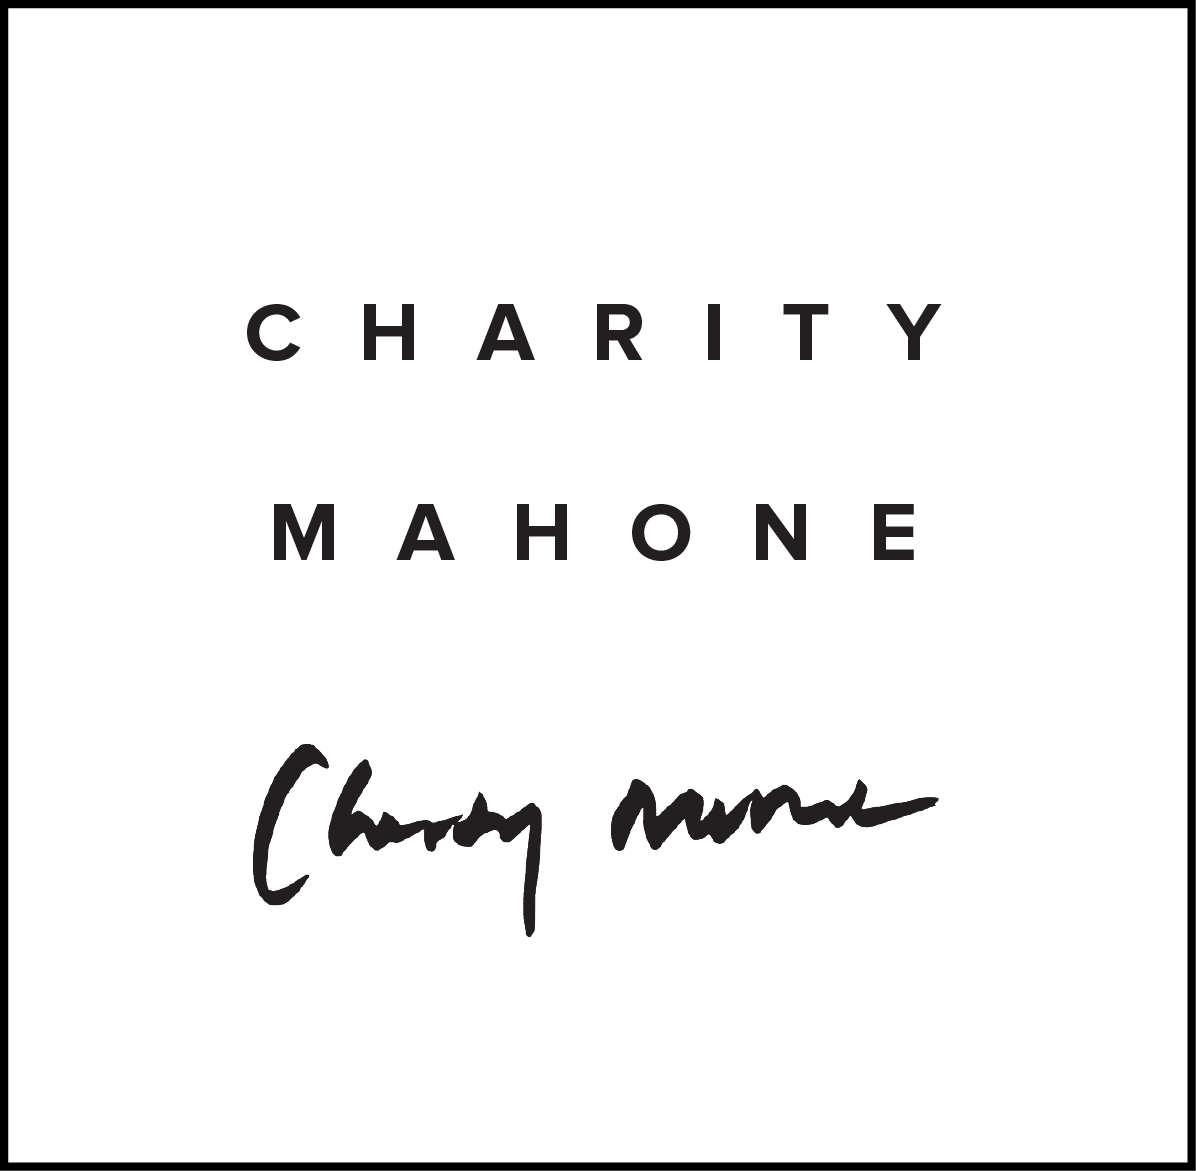 Charity Mahone